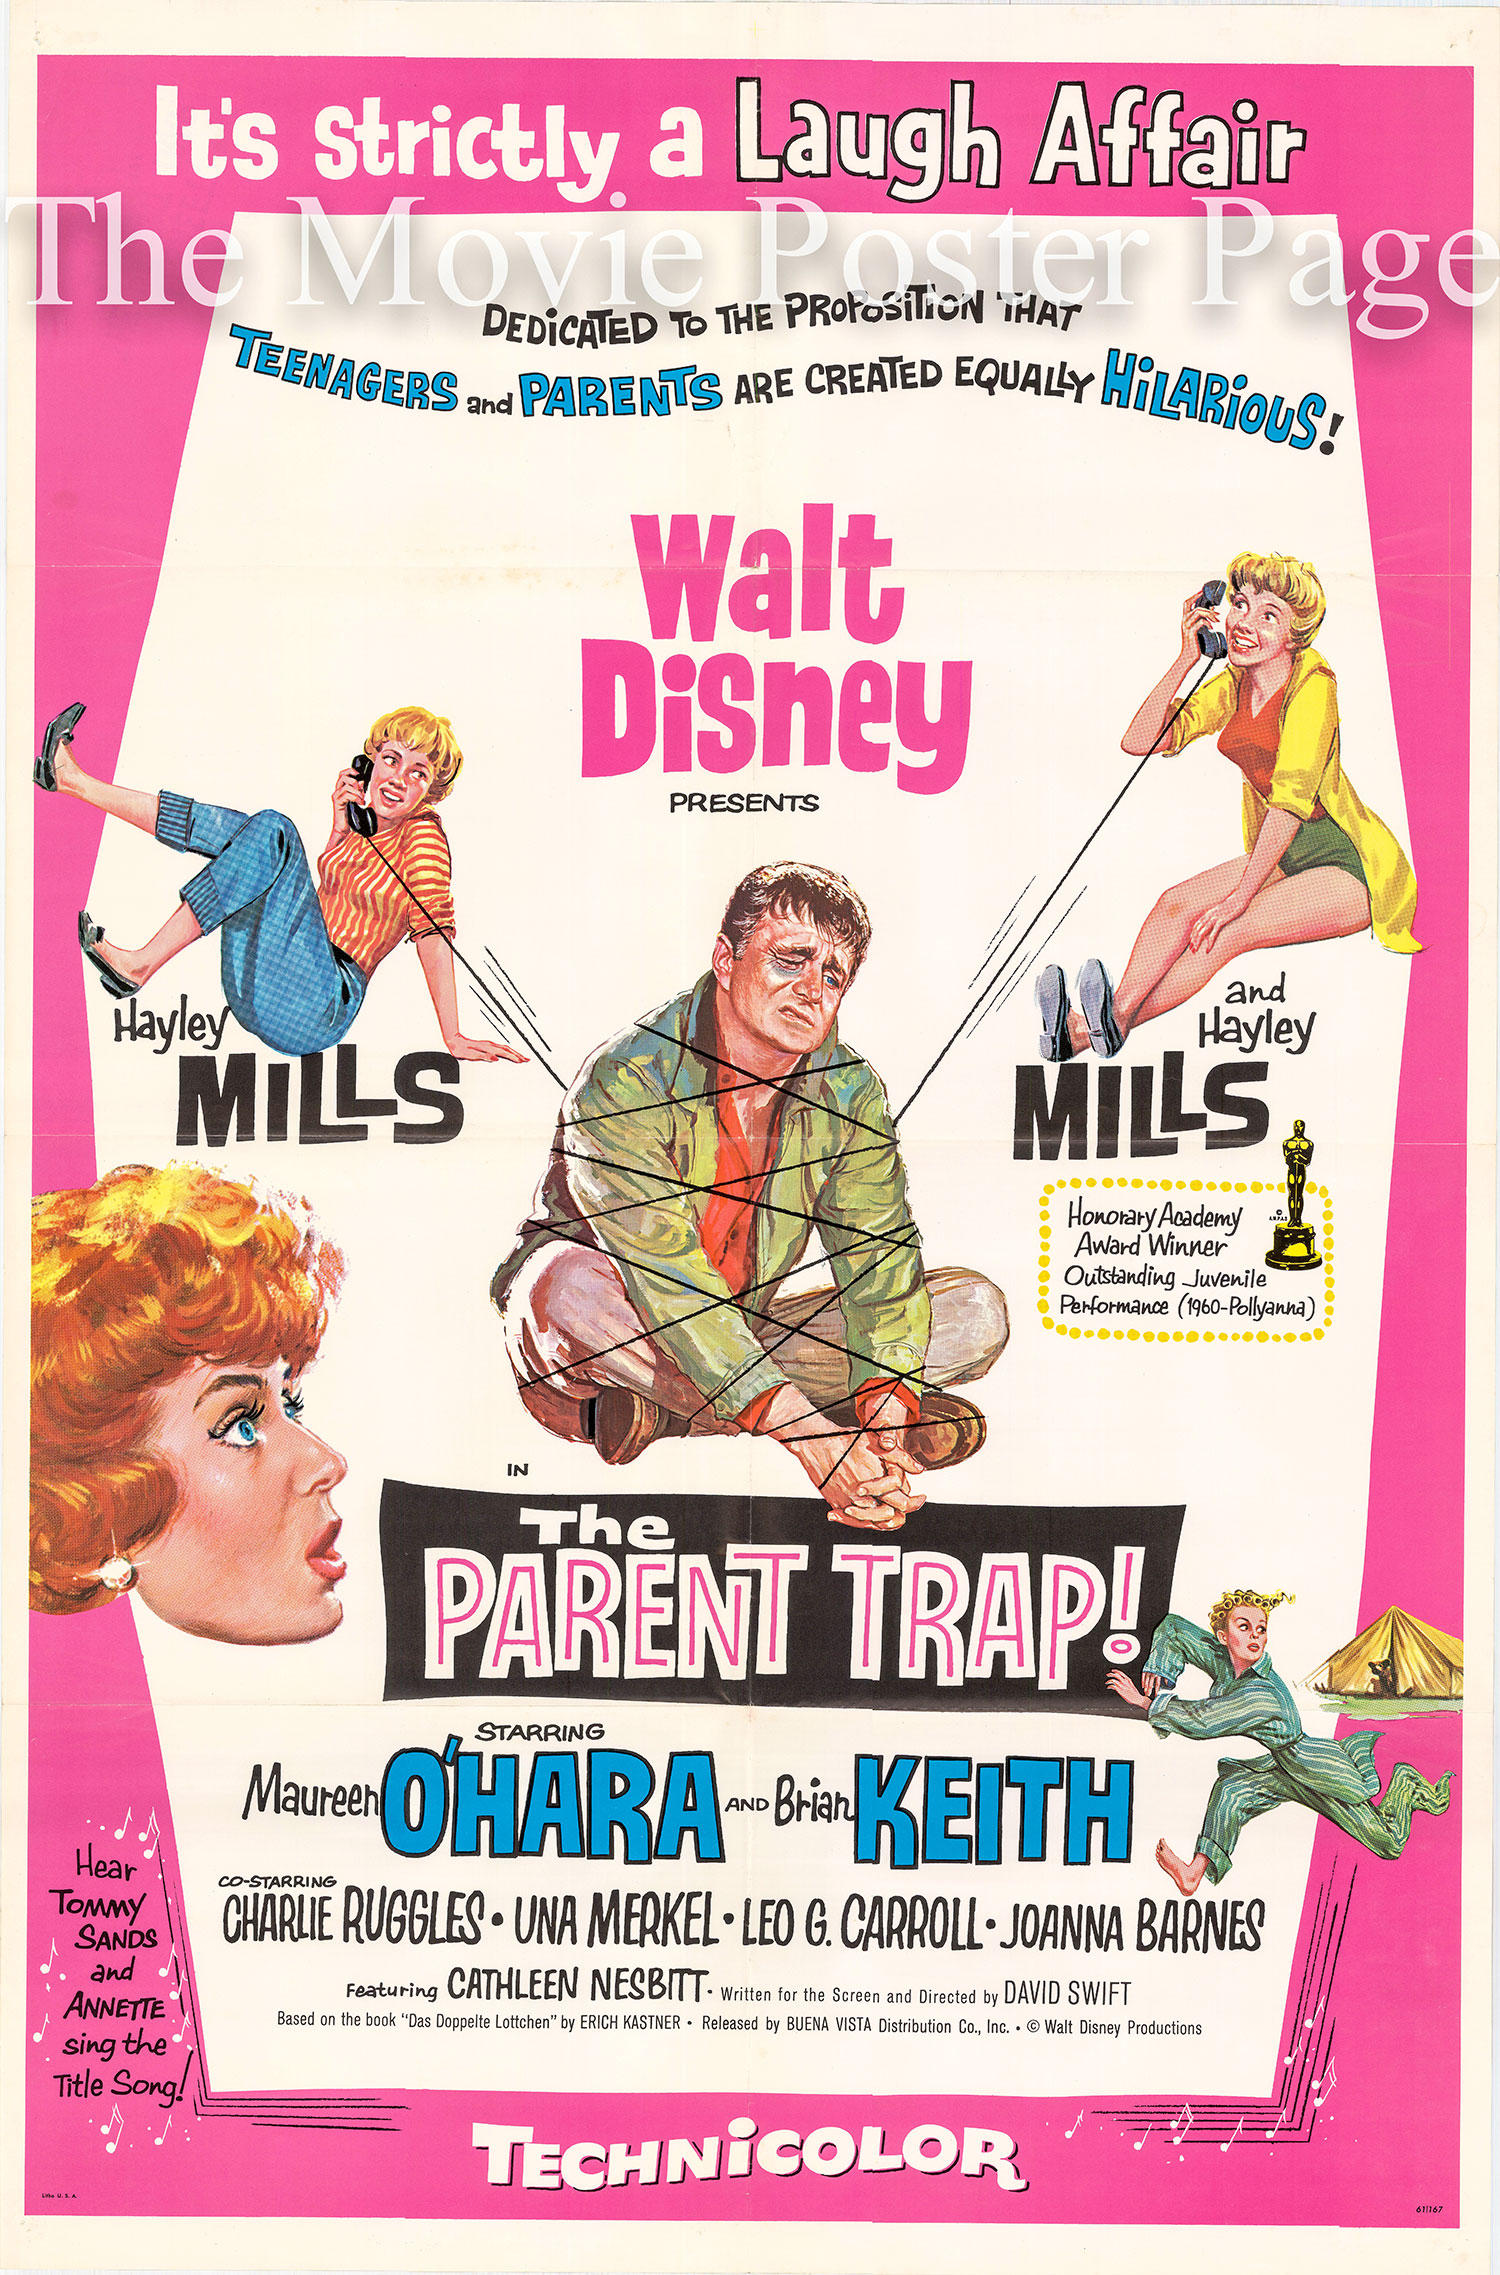 Pictured is a US one-sheet promotional poster for the 1961 David Swift film The Parent Trap starring Hayley Mills.